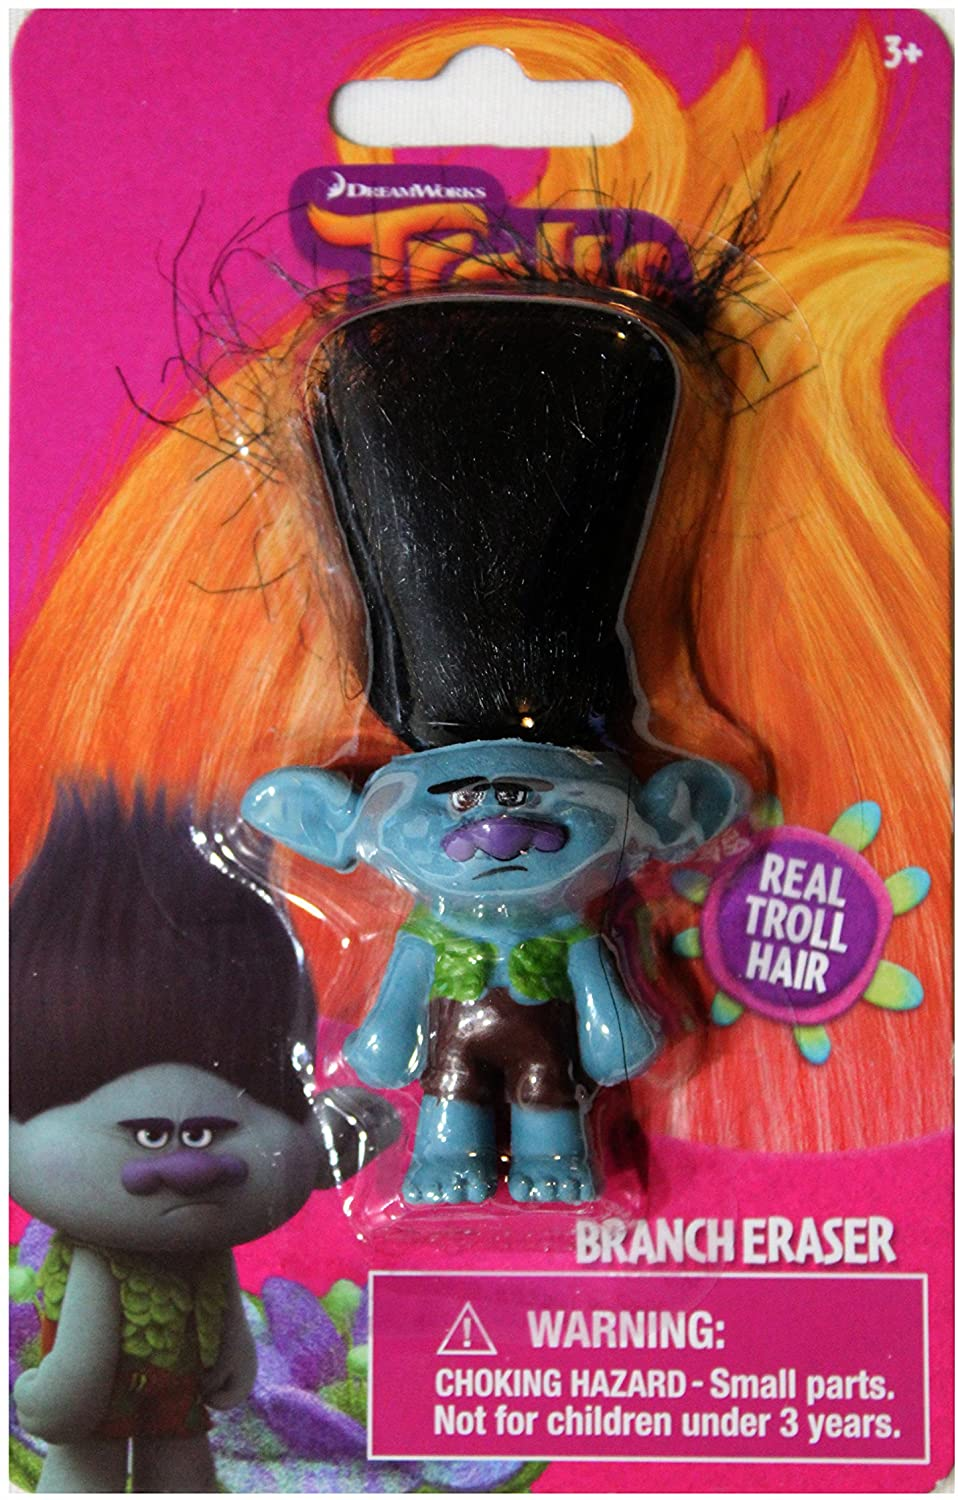 Dream Works Trolls Brancher Eraser 2 inch mini-figure